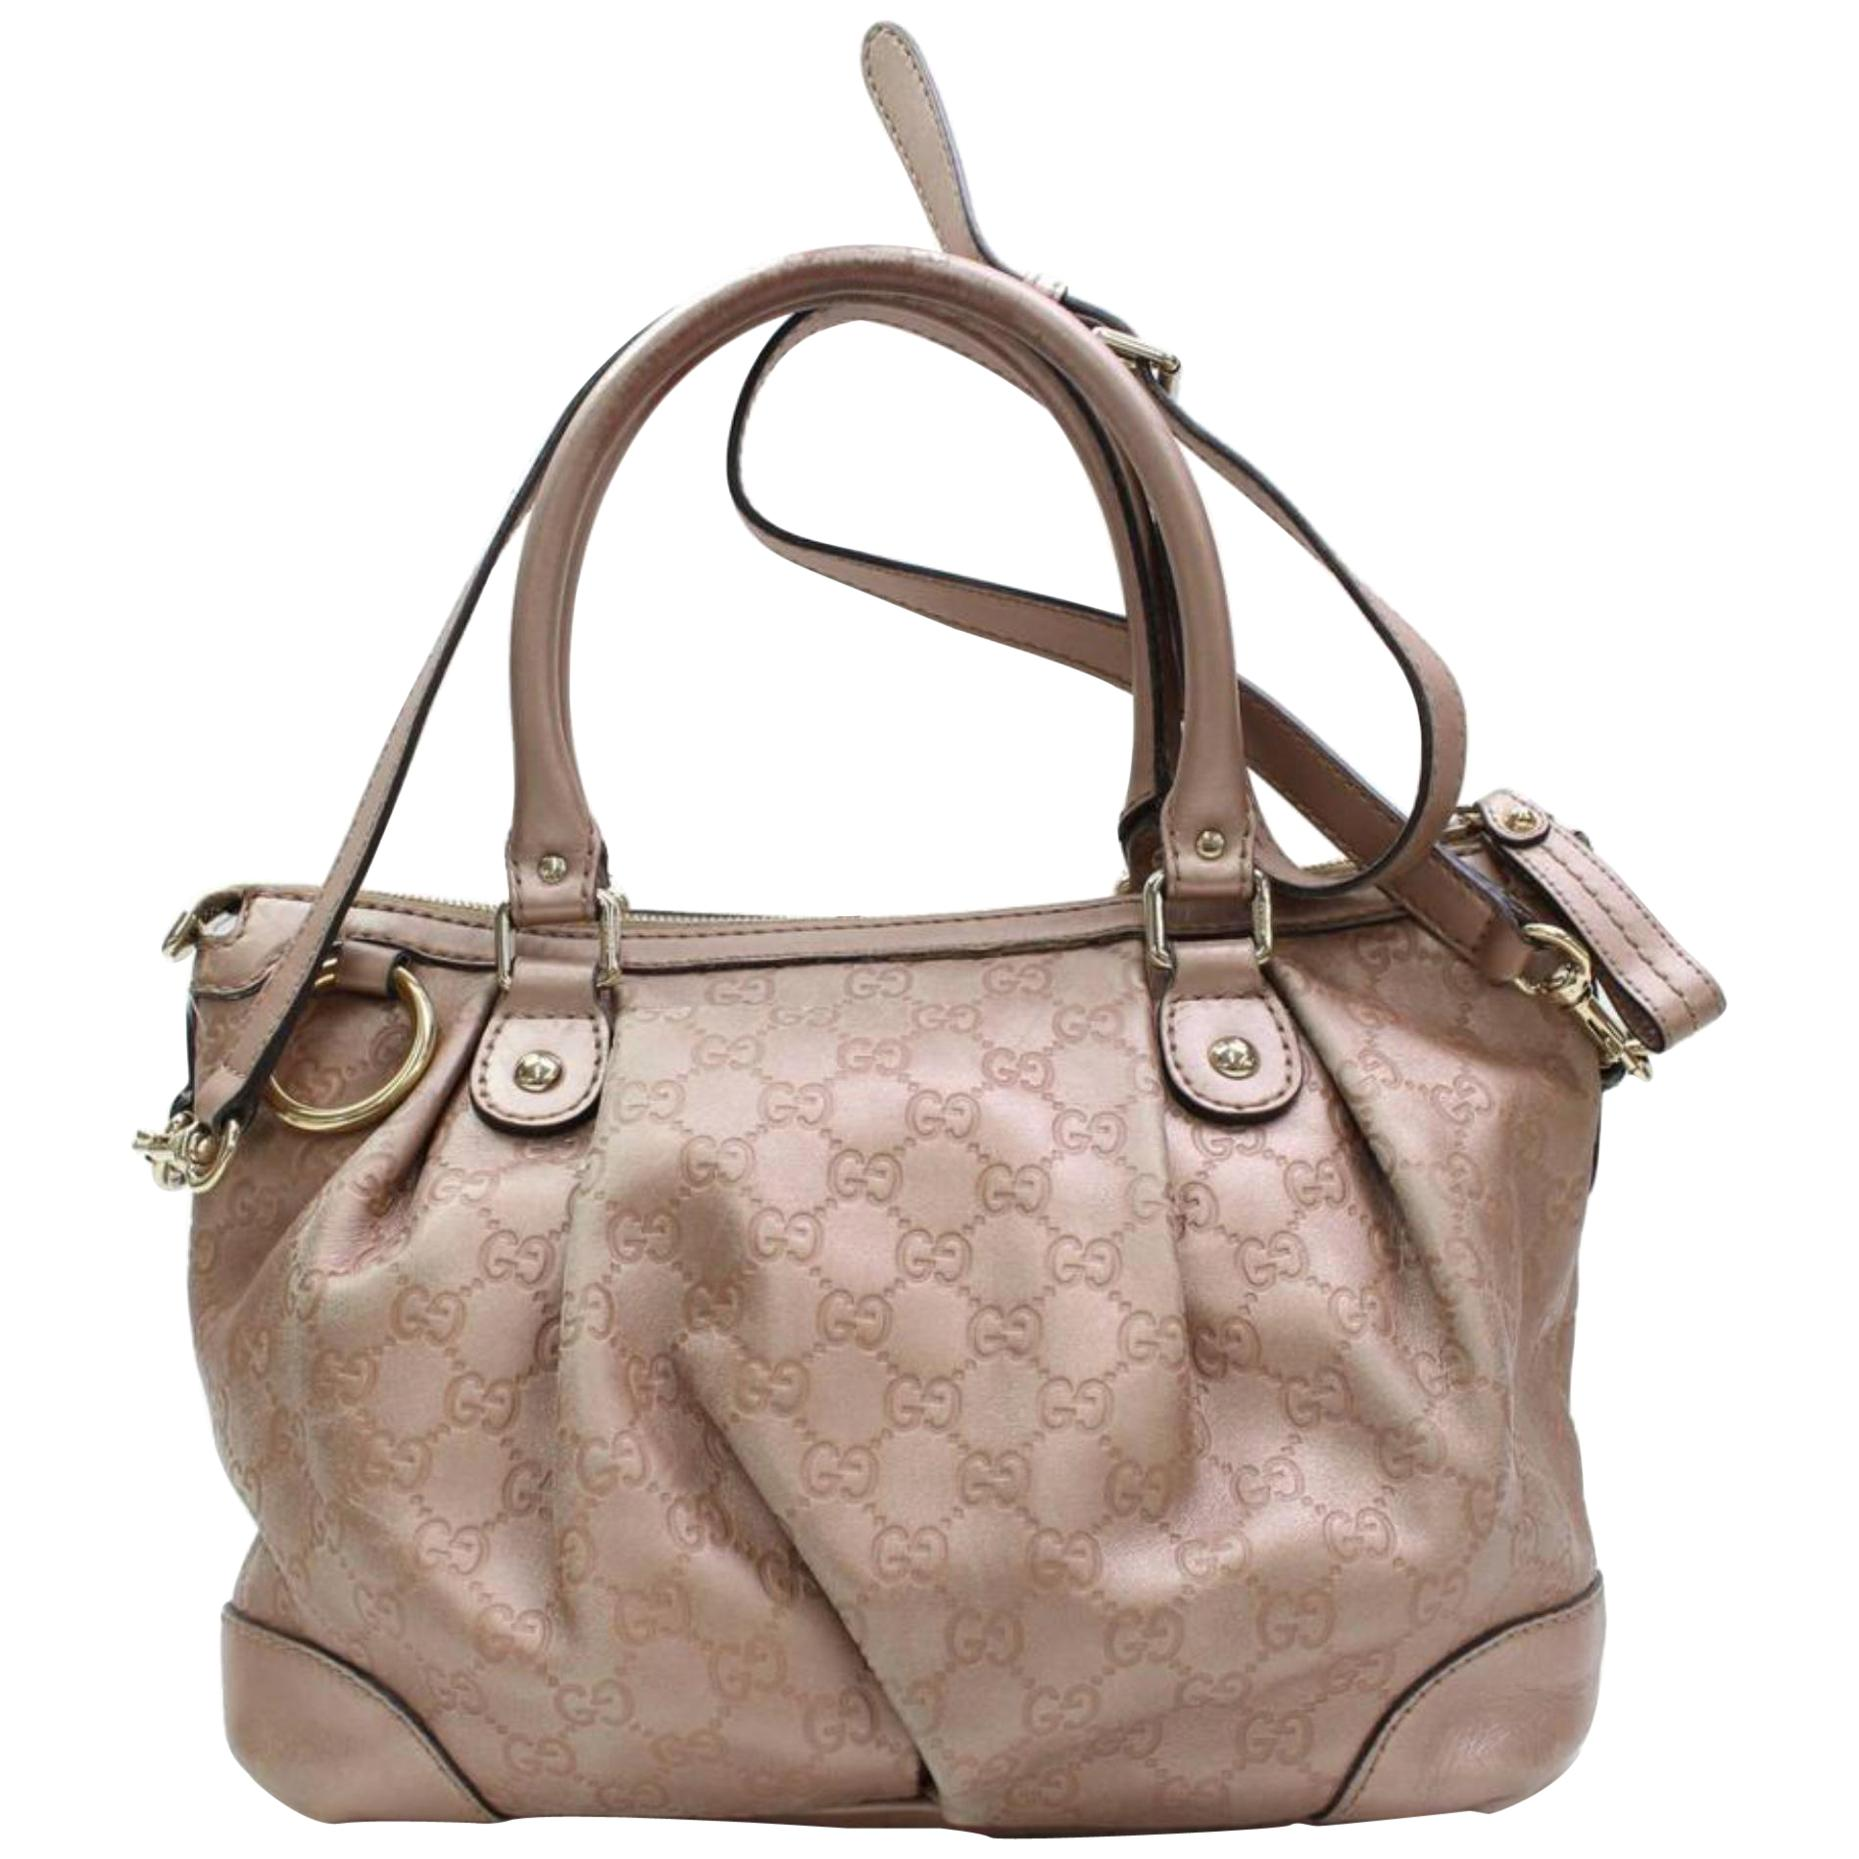 98a8844bea47 Brown Handbags and Purses - 4,369 For Sale at 1stdibs - Page 8